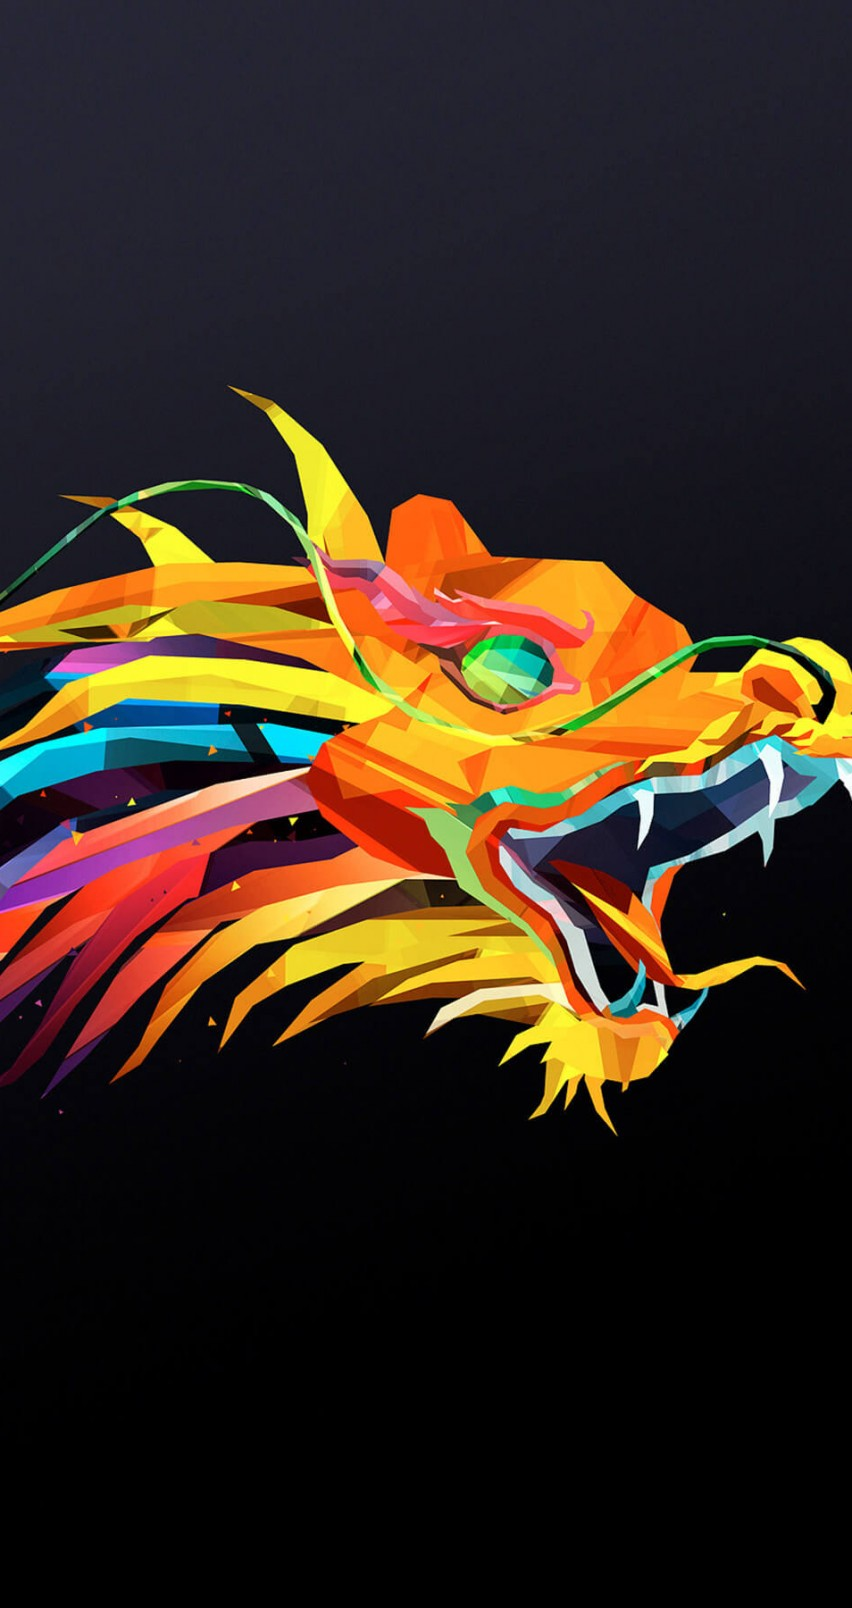 Free Download Download The Dragon Hd Wallpaper For Iphone 6